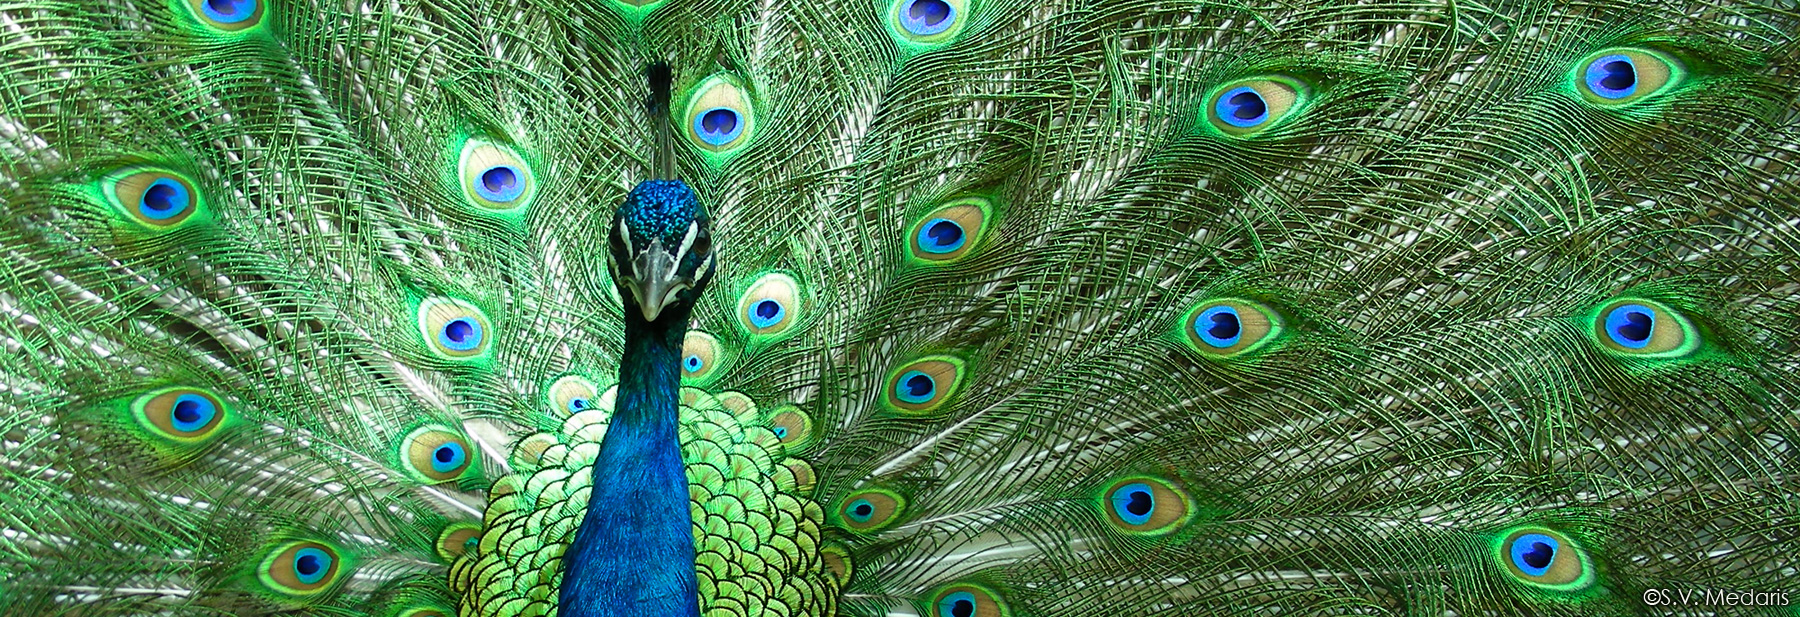 Closeup of peacock head and neck with tail feathers behind